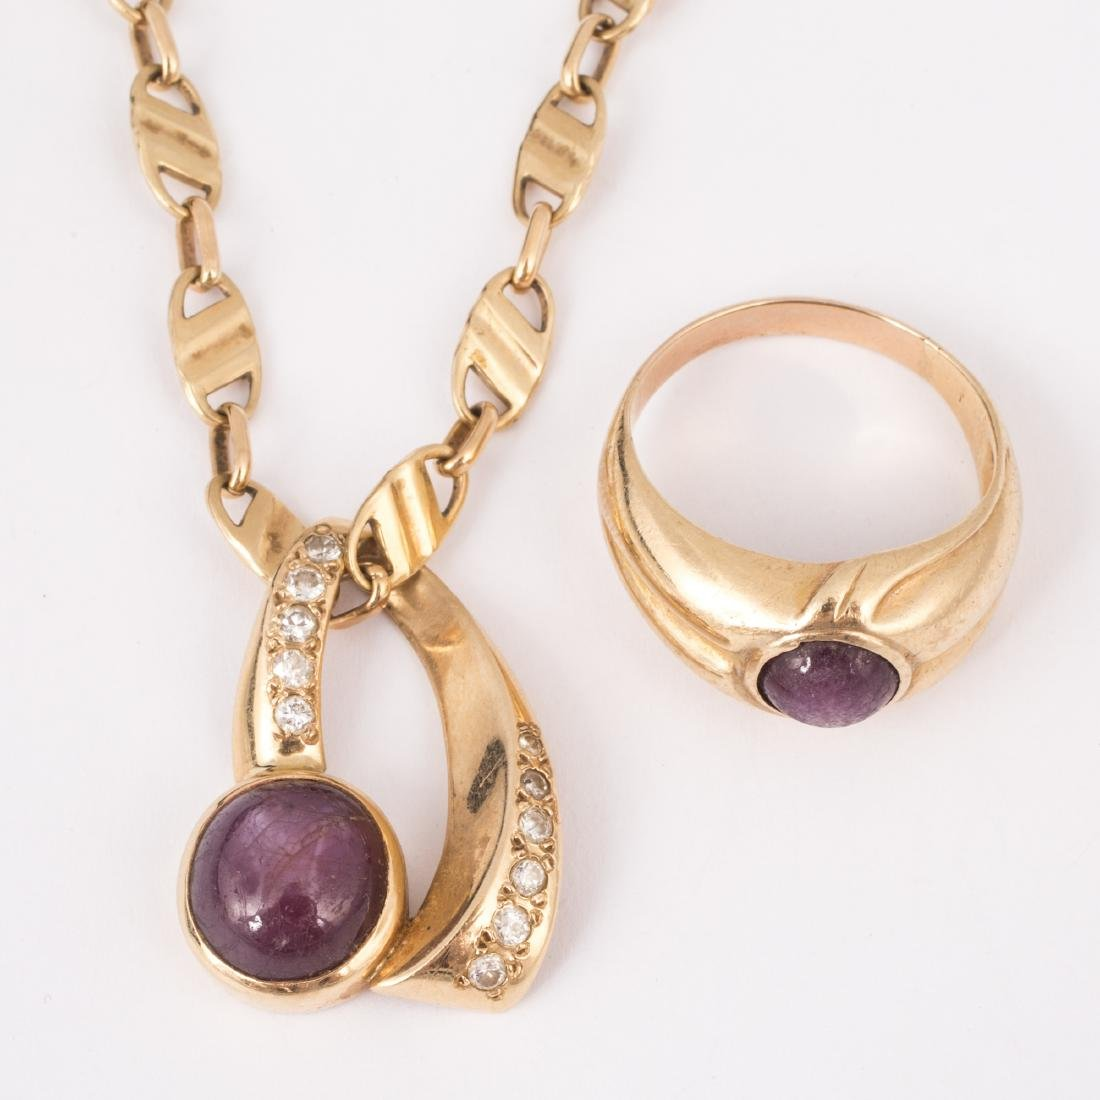 STAR SAPPHIRE NECKLACE & RING